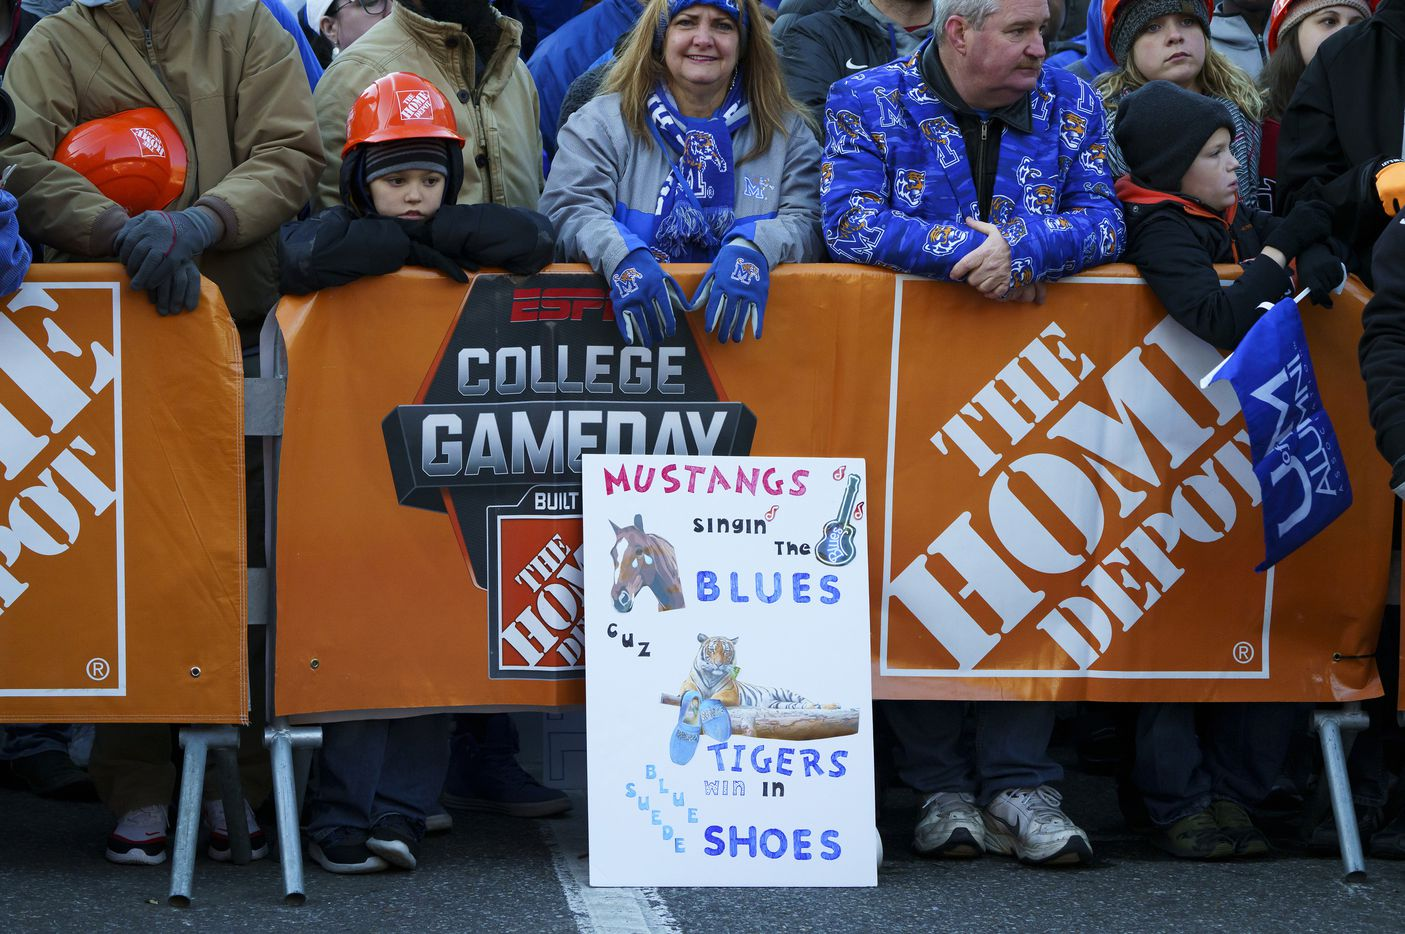 Fans crowd against a barrier during ESPN College GameDay before an NCAA football game between Memphis and SMU on Saturday, Nov. 2, 2019, in Memphis, Tenn.